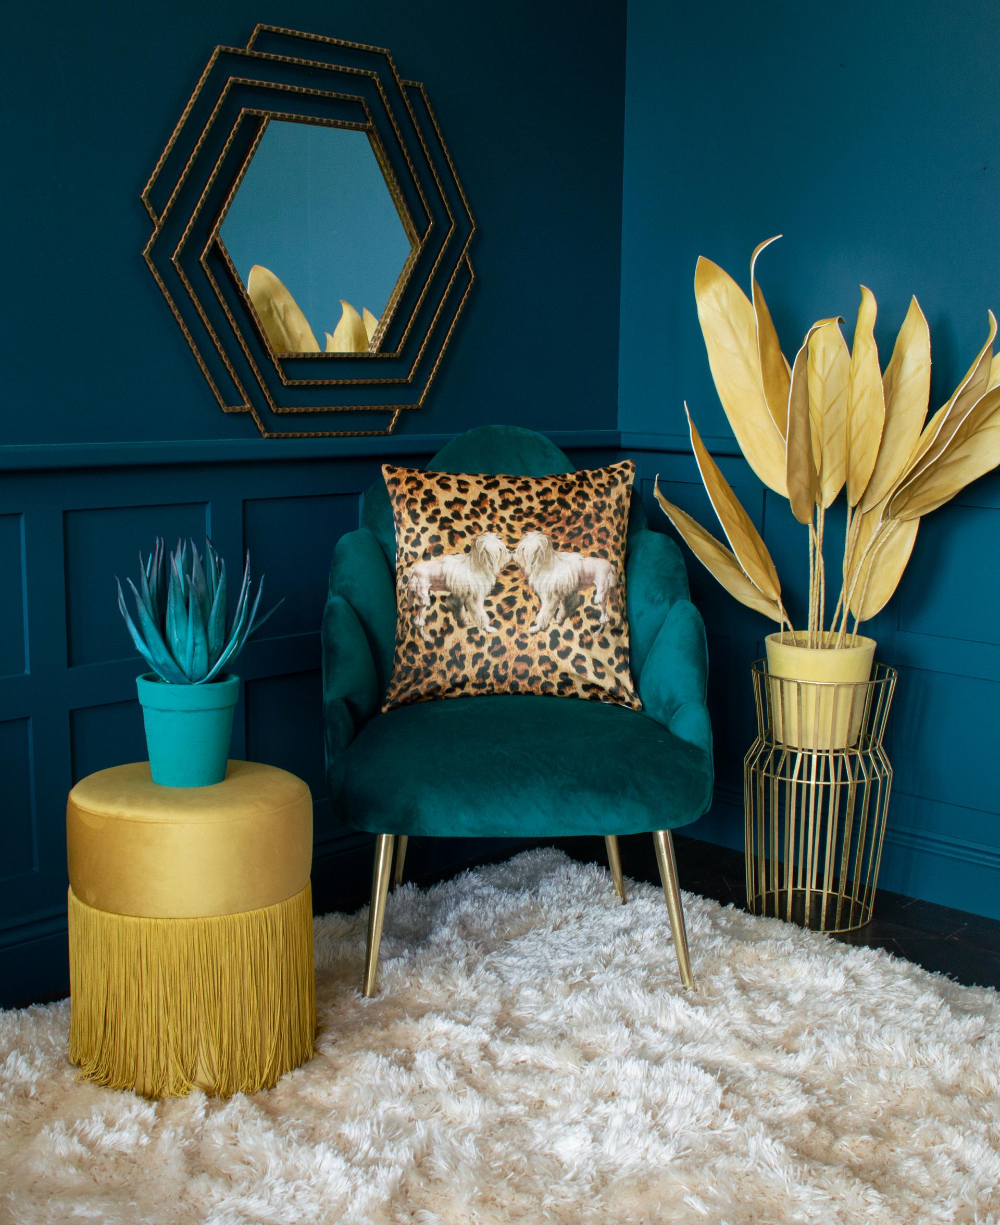 Fringe Benefits: The Interior Trend Holding Sway, Audenza